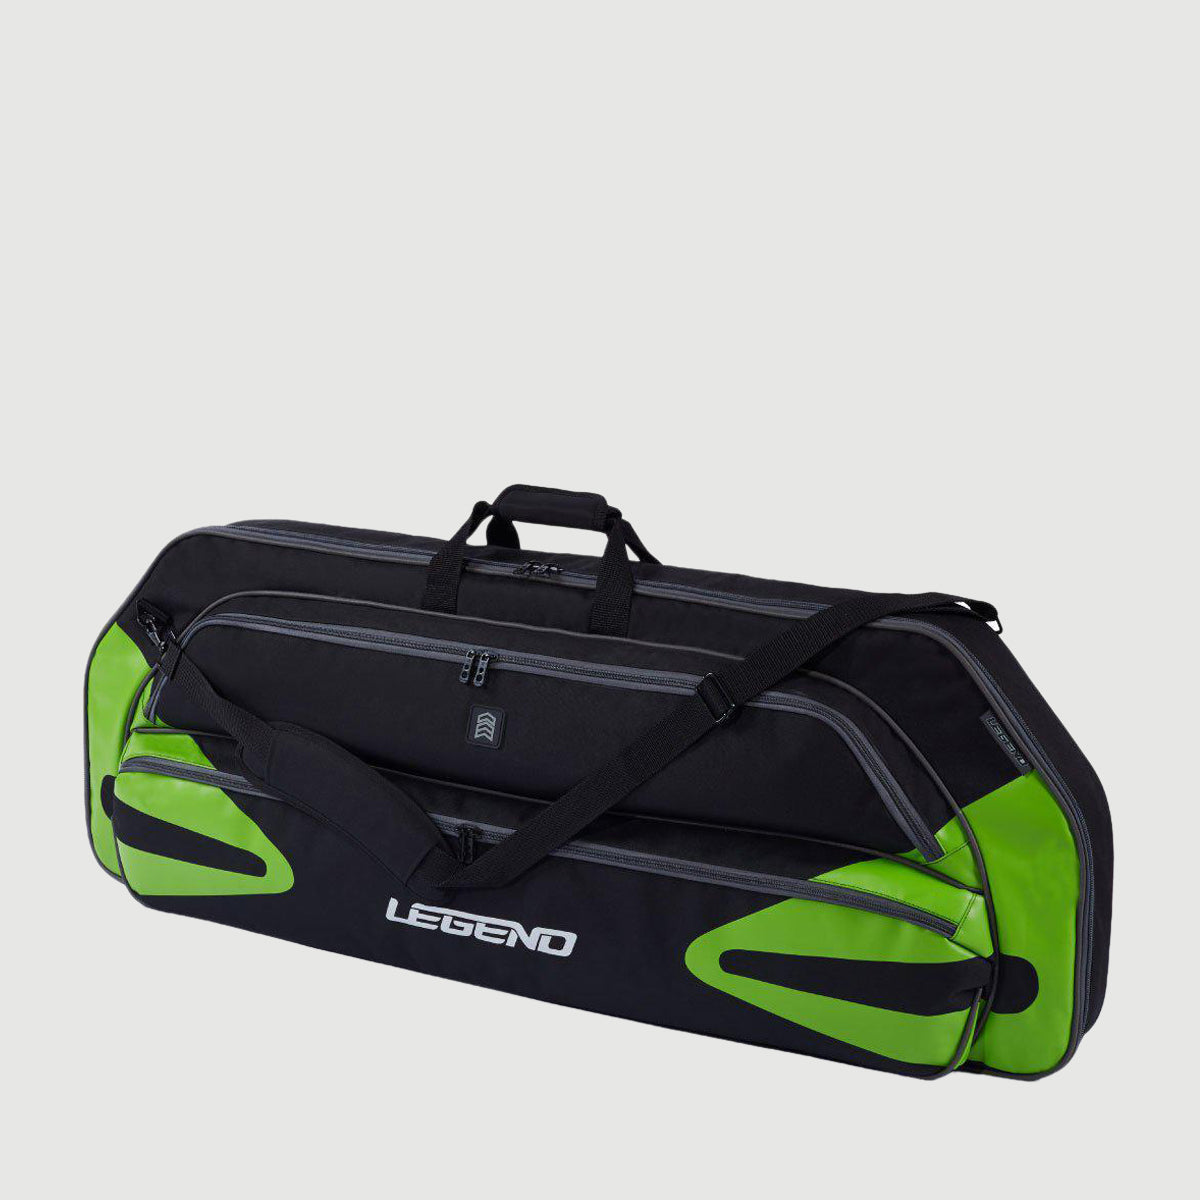 Compound Bow Case Monstro-Legend Outdoor Industries